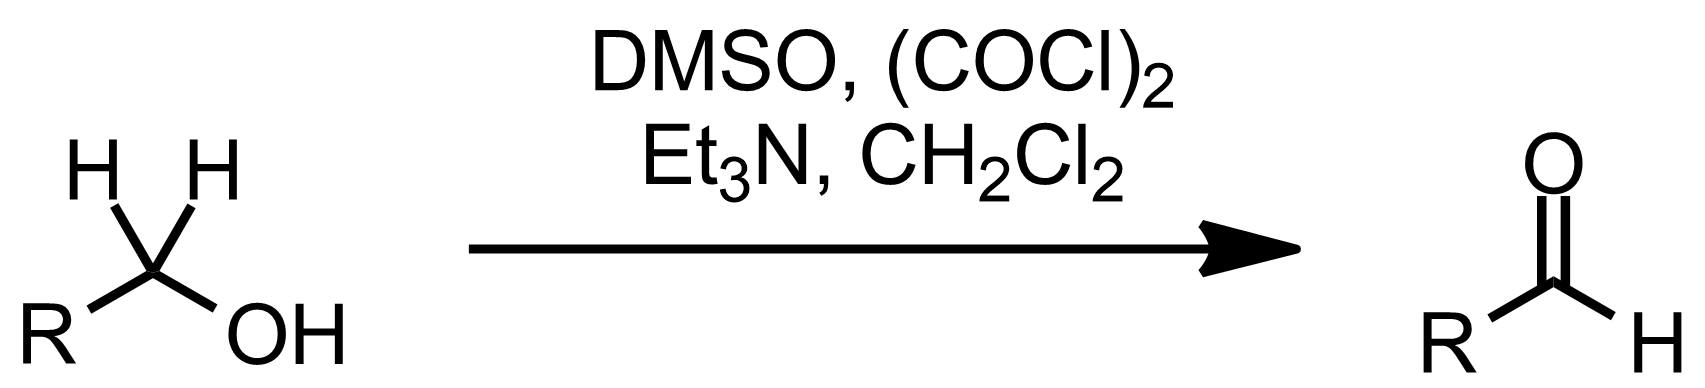 Schematic representation of the Swern Oxidation.